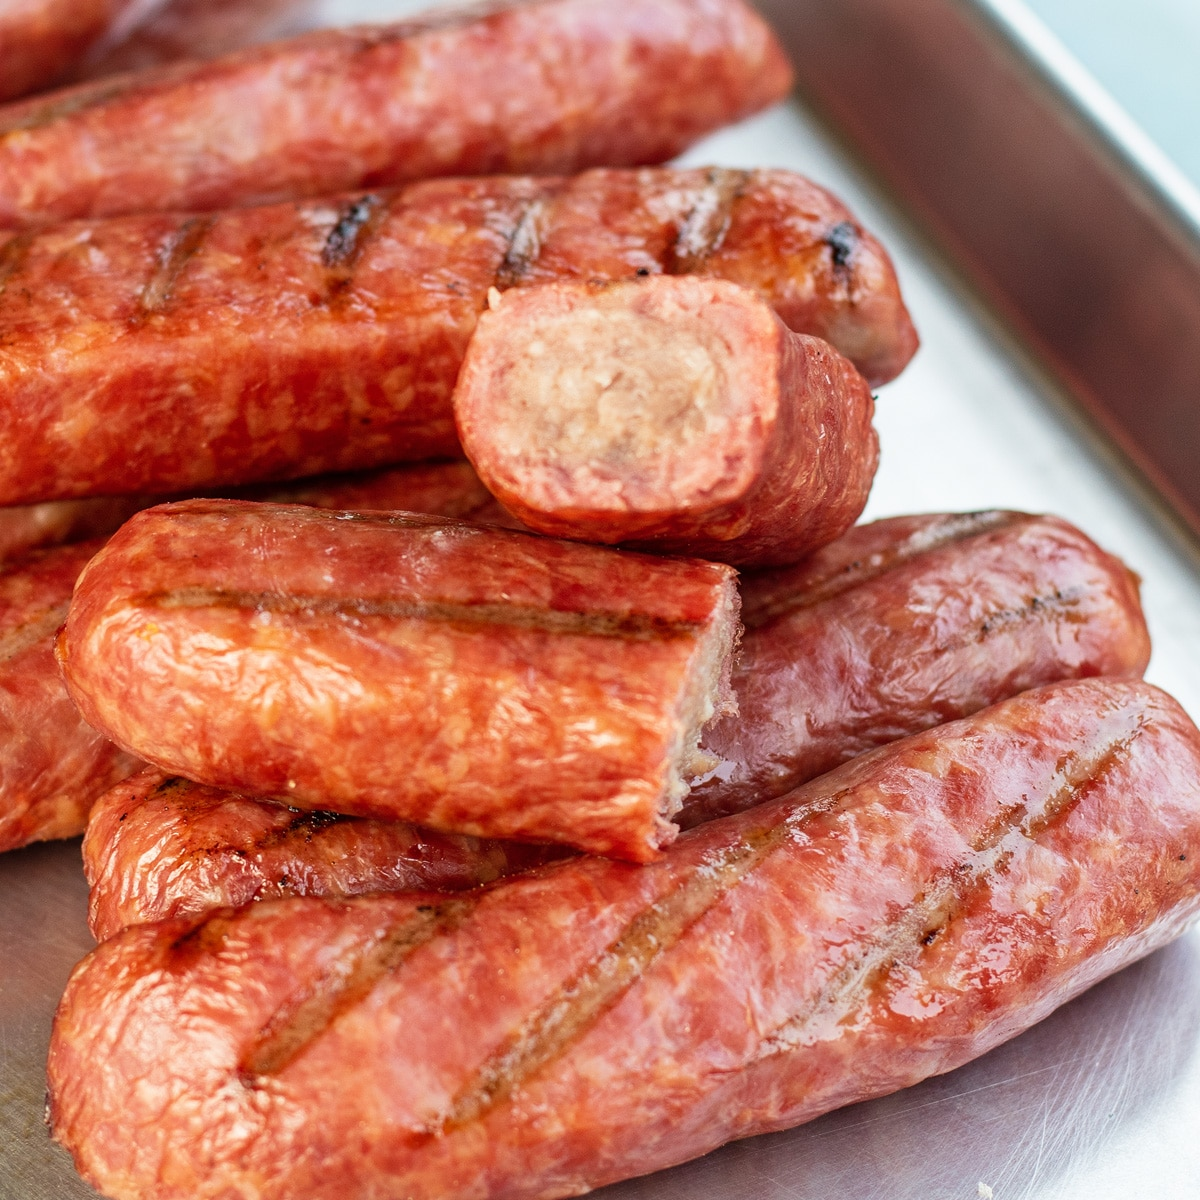 Smoked brats served on metal tray.